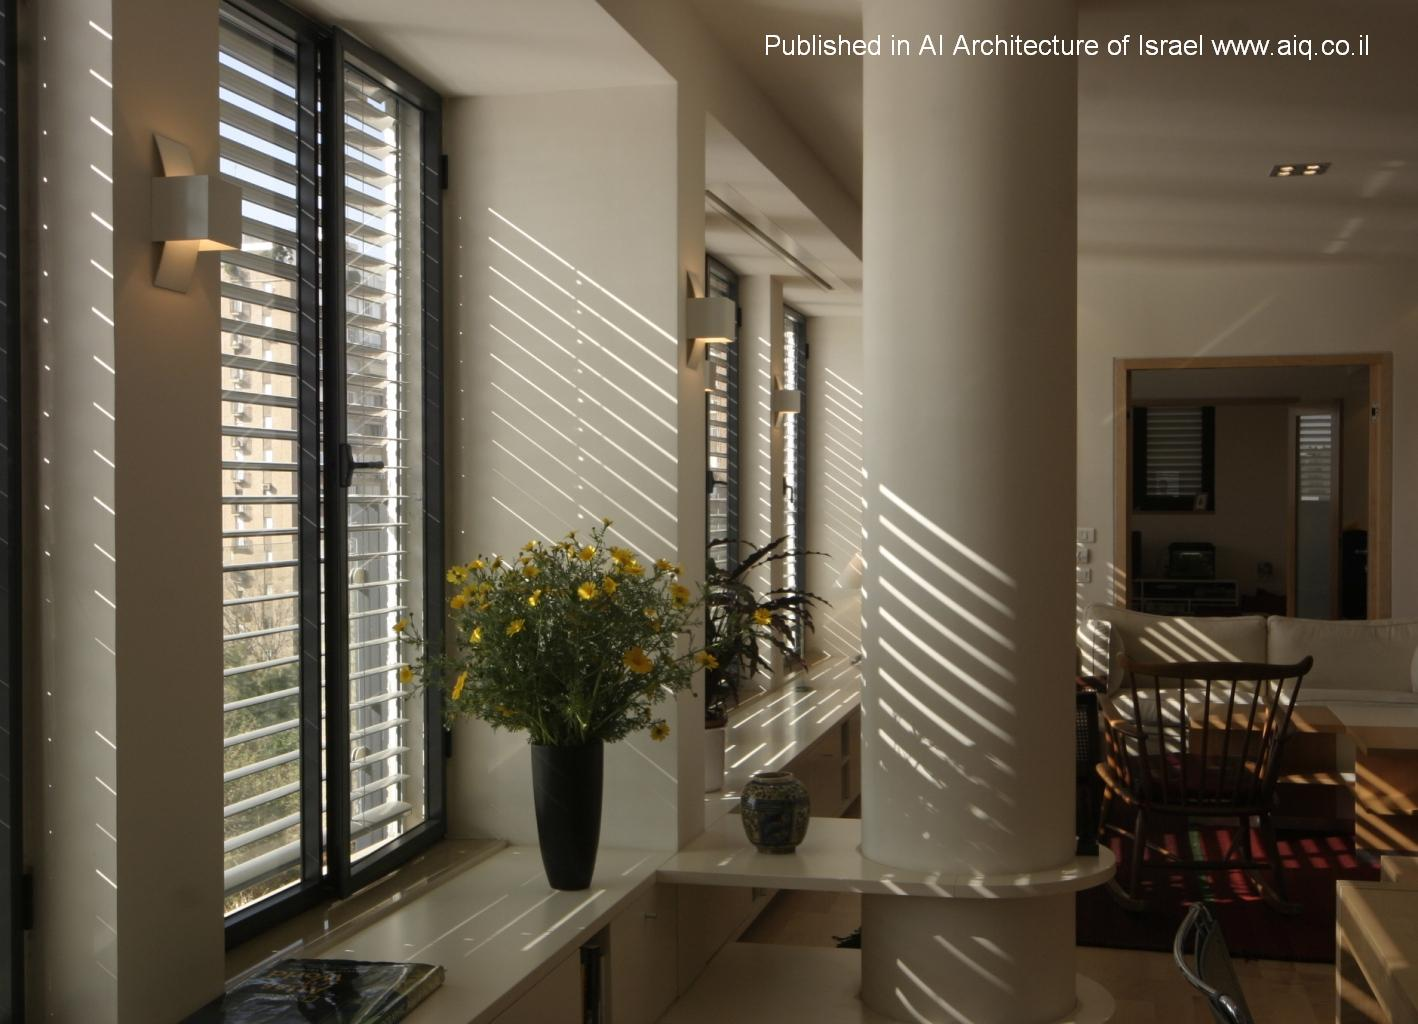 Published in AI Arch. of Israel